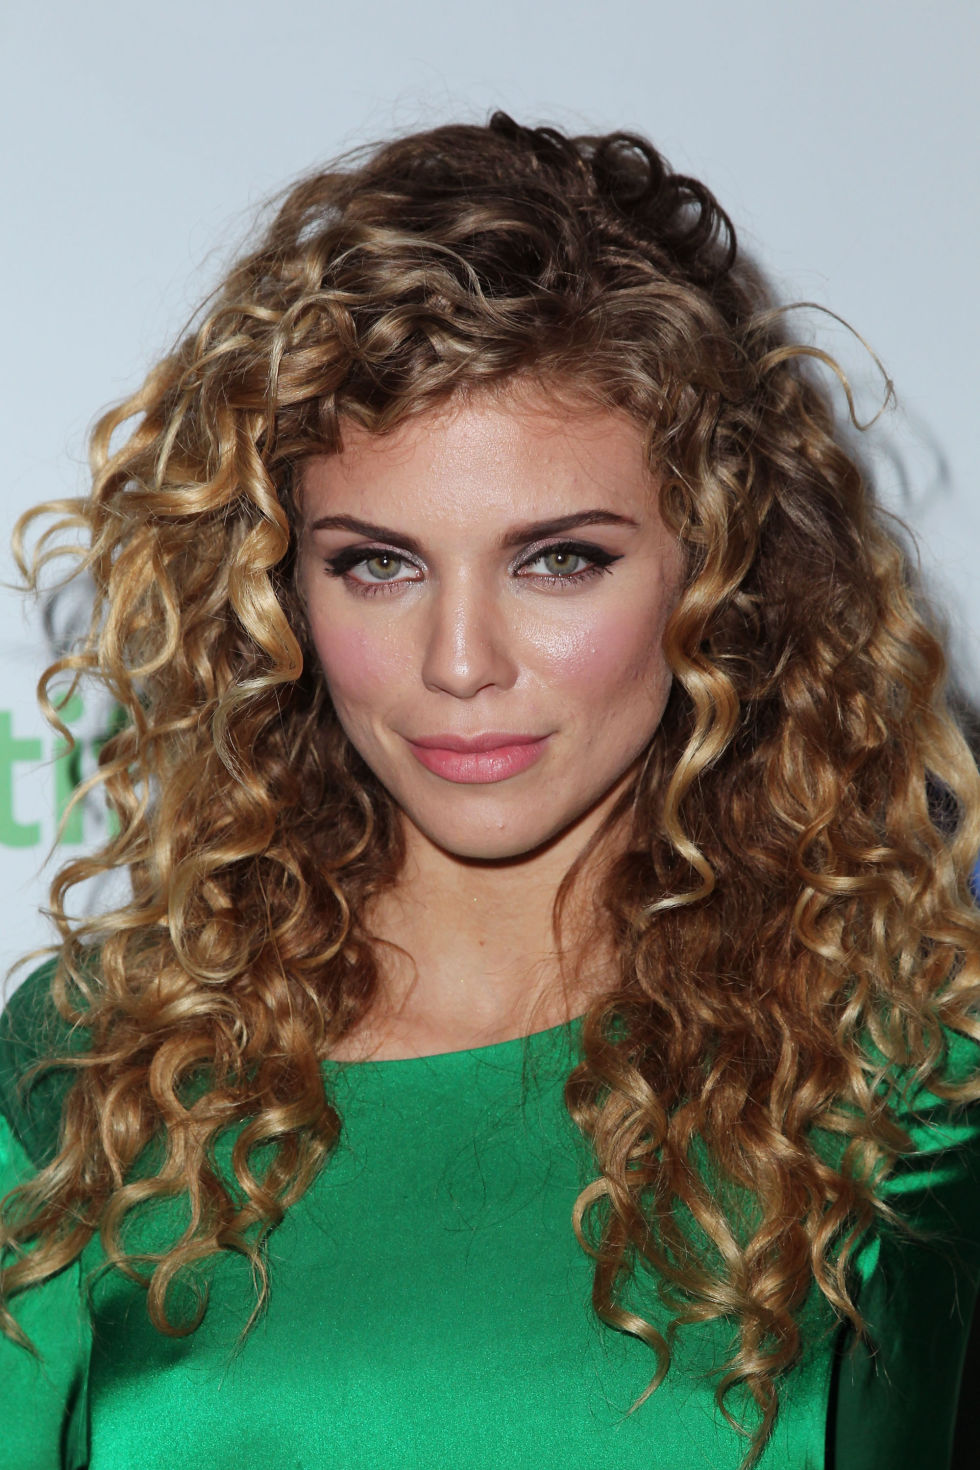 Superb 30 Best Curly Hairstyles Of 2017 Cute Hairstyles For Curly Hair Short Hairstyles Gunalazisus